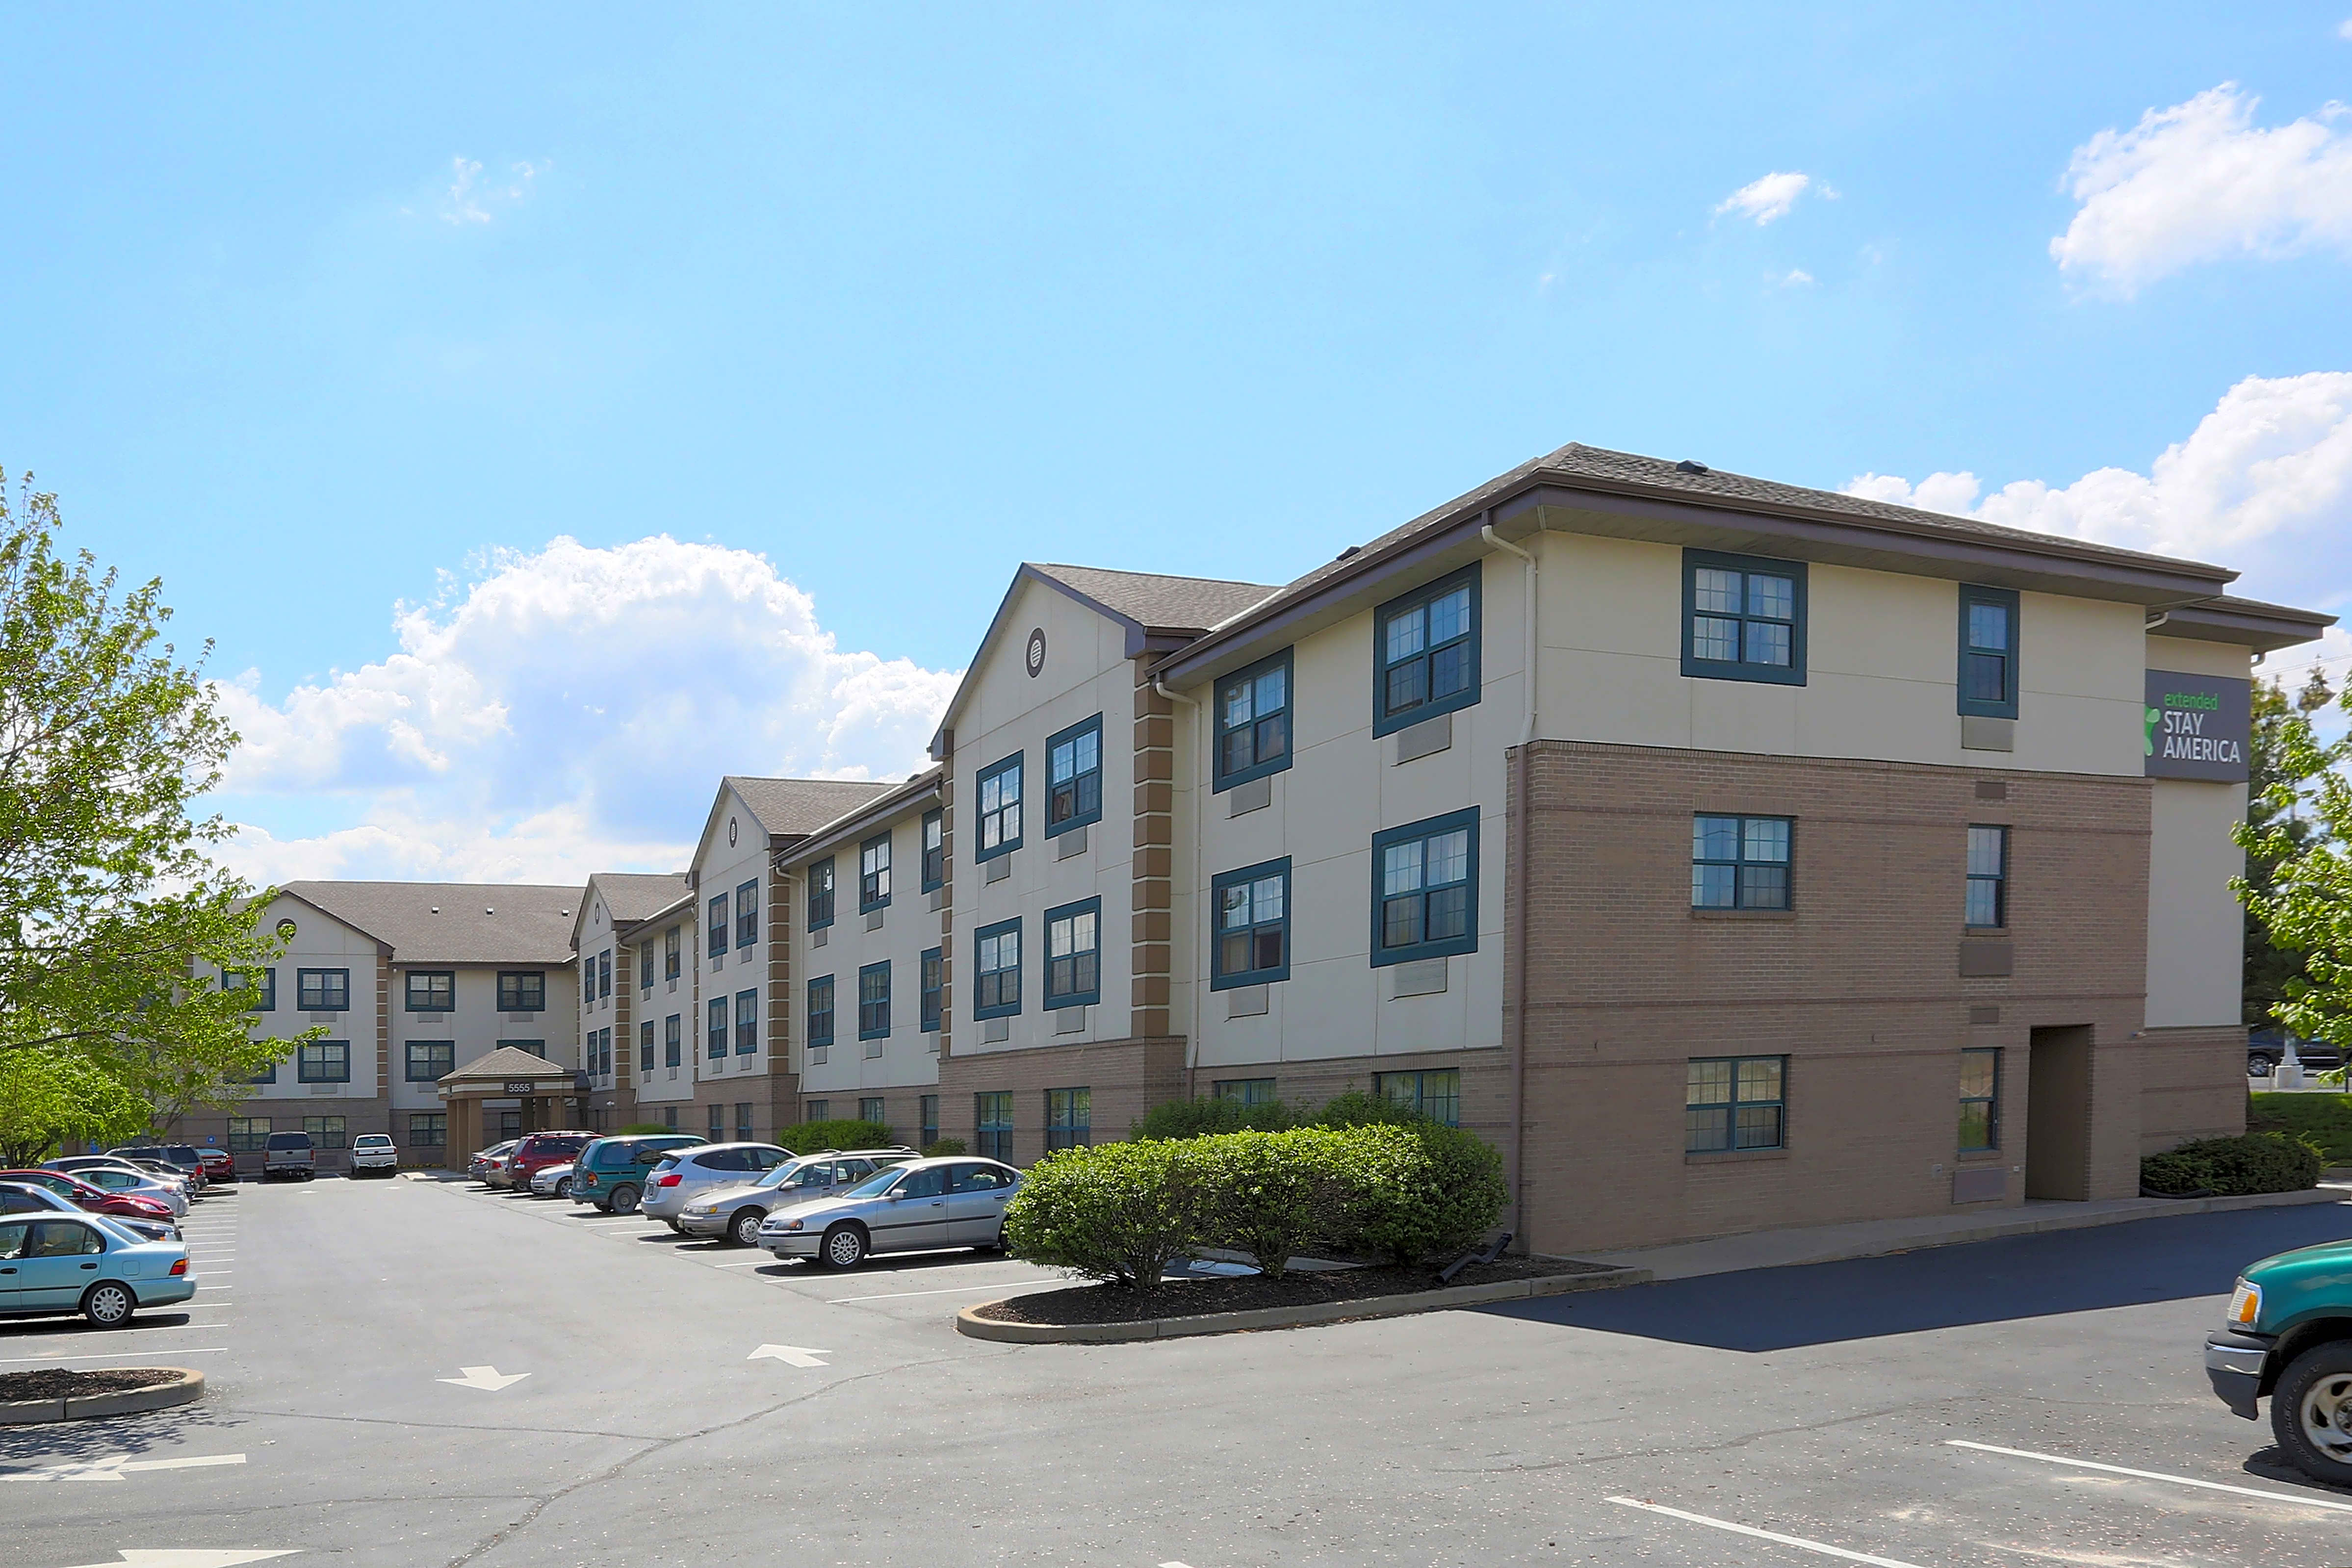 Apartments Near Lindenwood Furnished Studio - St. Louis - St. Peters for Lindenwood University Students in Saint Charles, MO